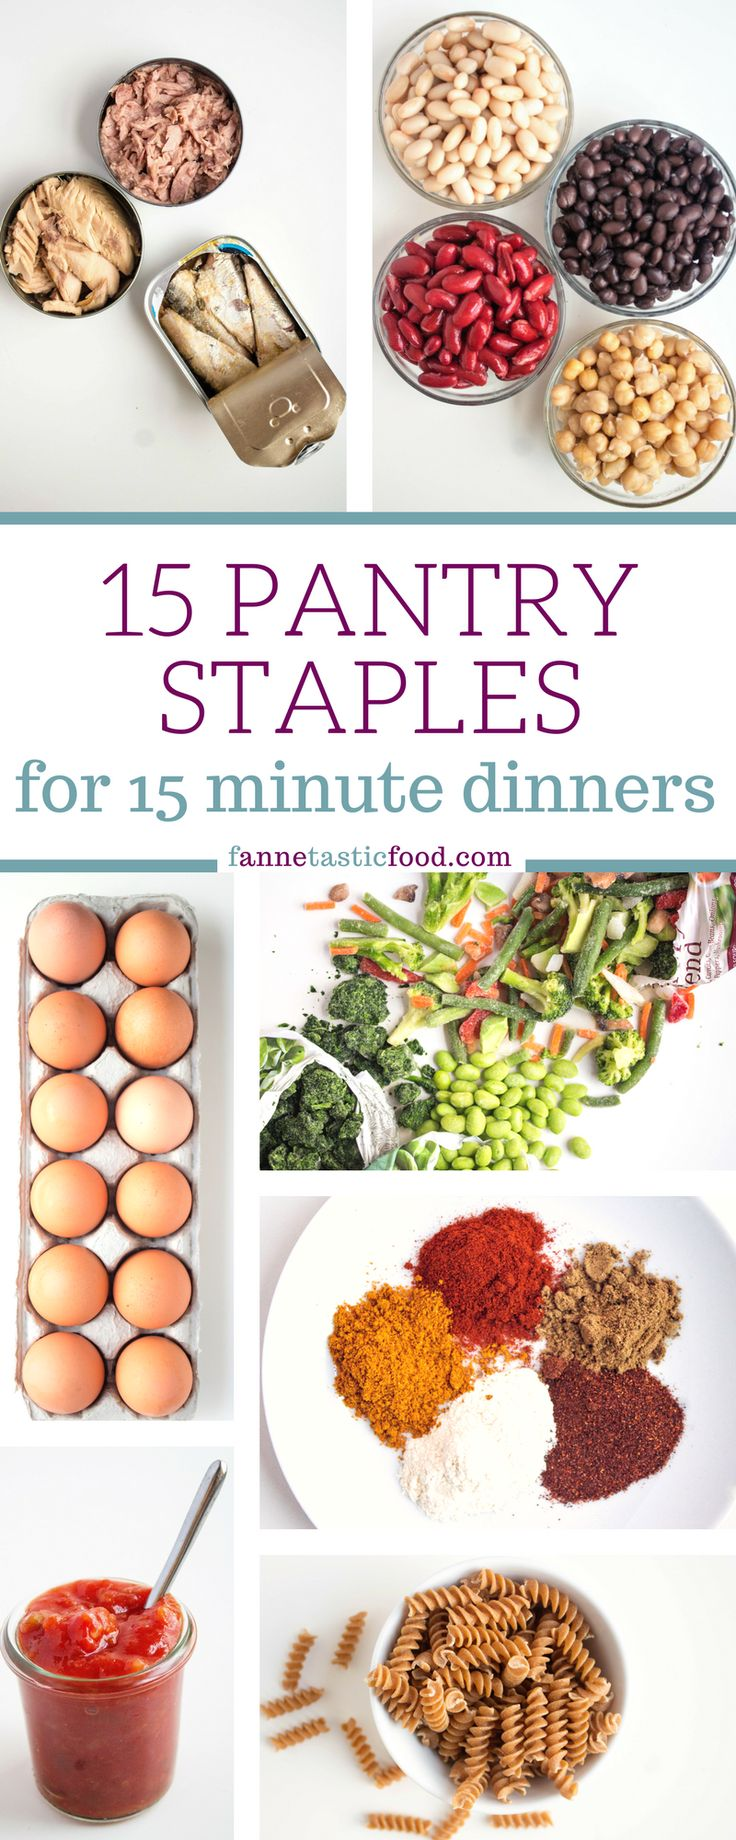 These 15 Pantry Staples are all you need to make a variety of 15 minute dinners. They're all either shelf stable or have a long shelf life, so you can stock up and make a healthy 15 minute dinner even when you haven't been to the store in a while!  | healthy dinner ideas | fast weeknight meals | easy dinner recipes | one pot meals | vegetarian meal ideas | healthy pantry staples |